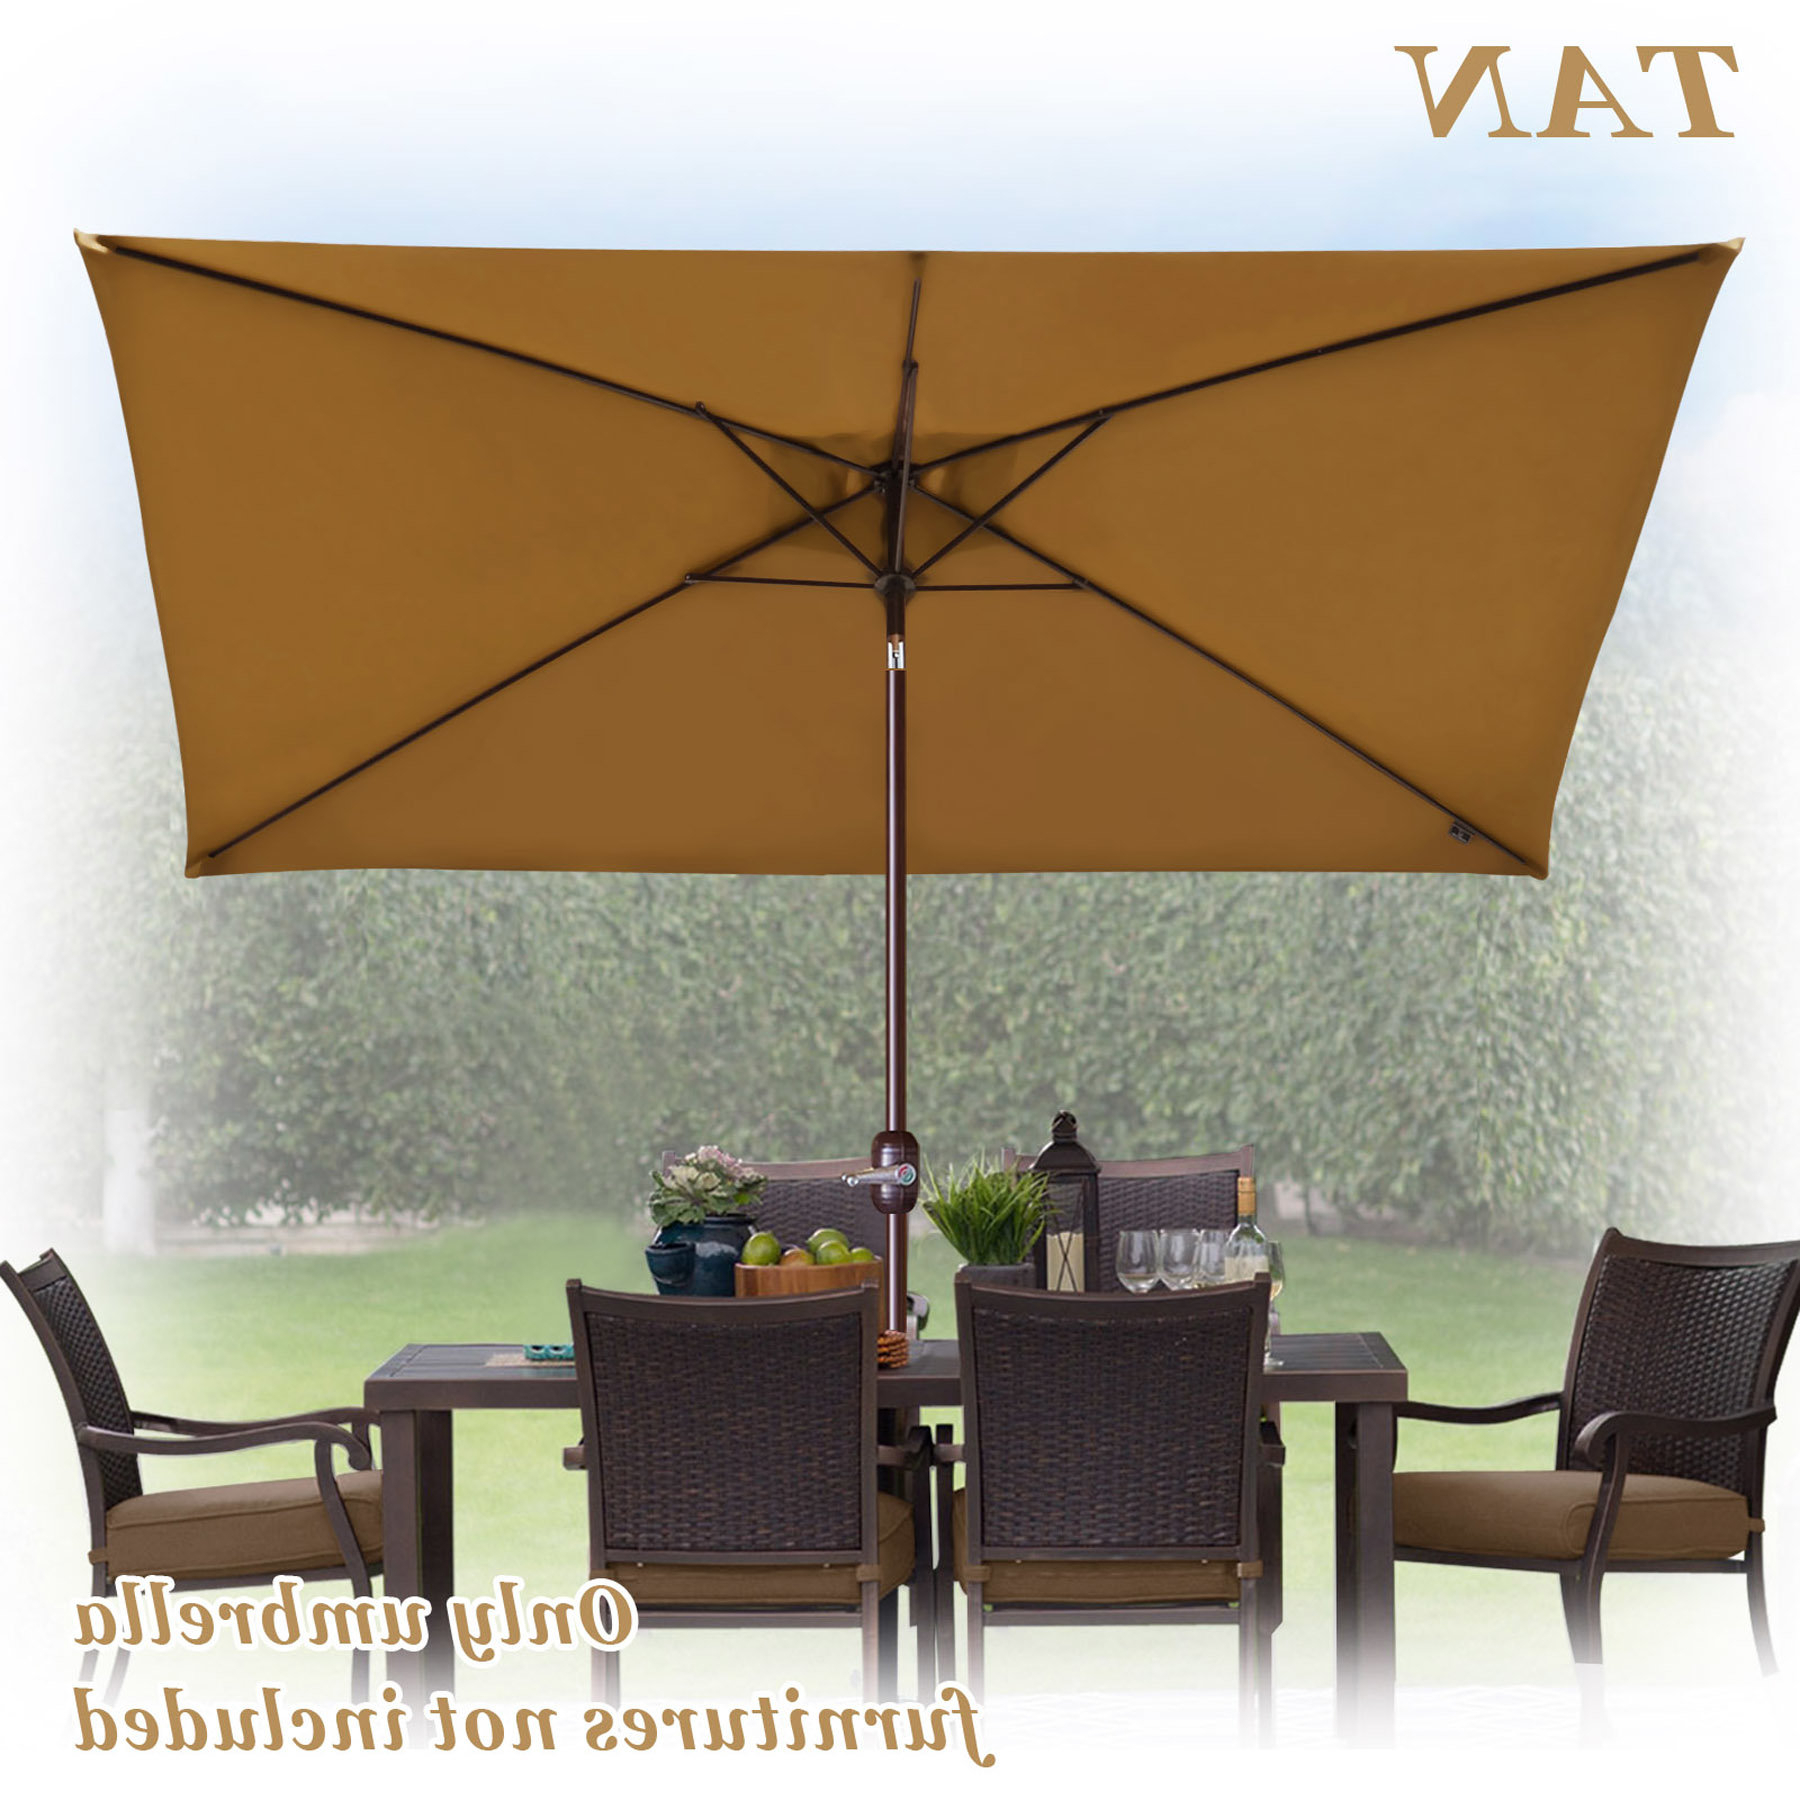 Bickford Outdoor Garden Patio Market Umbrella Throughout Current Gries Rectangular Market Umbrellas (View 12 of 20)